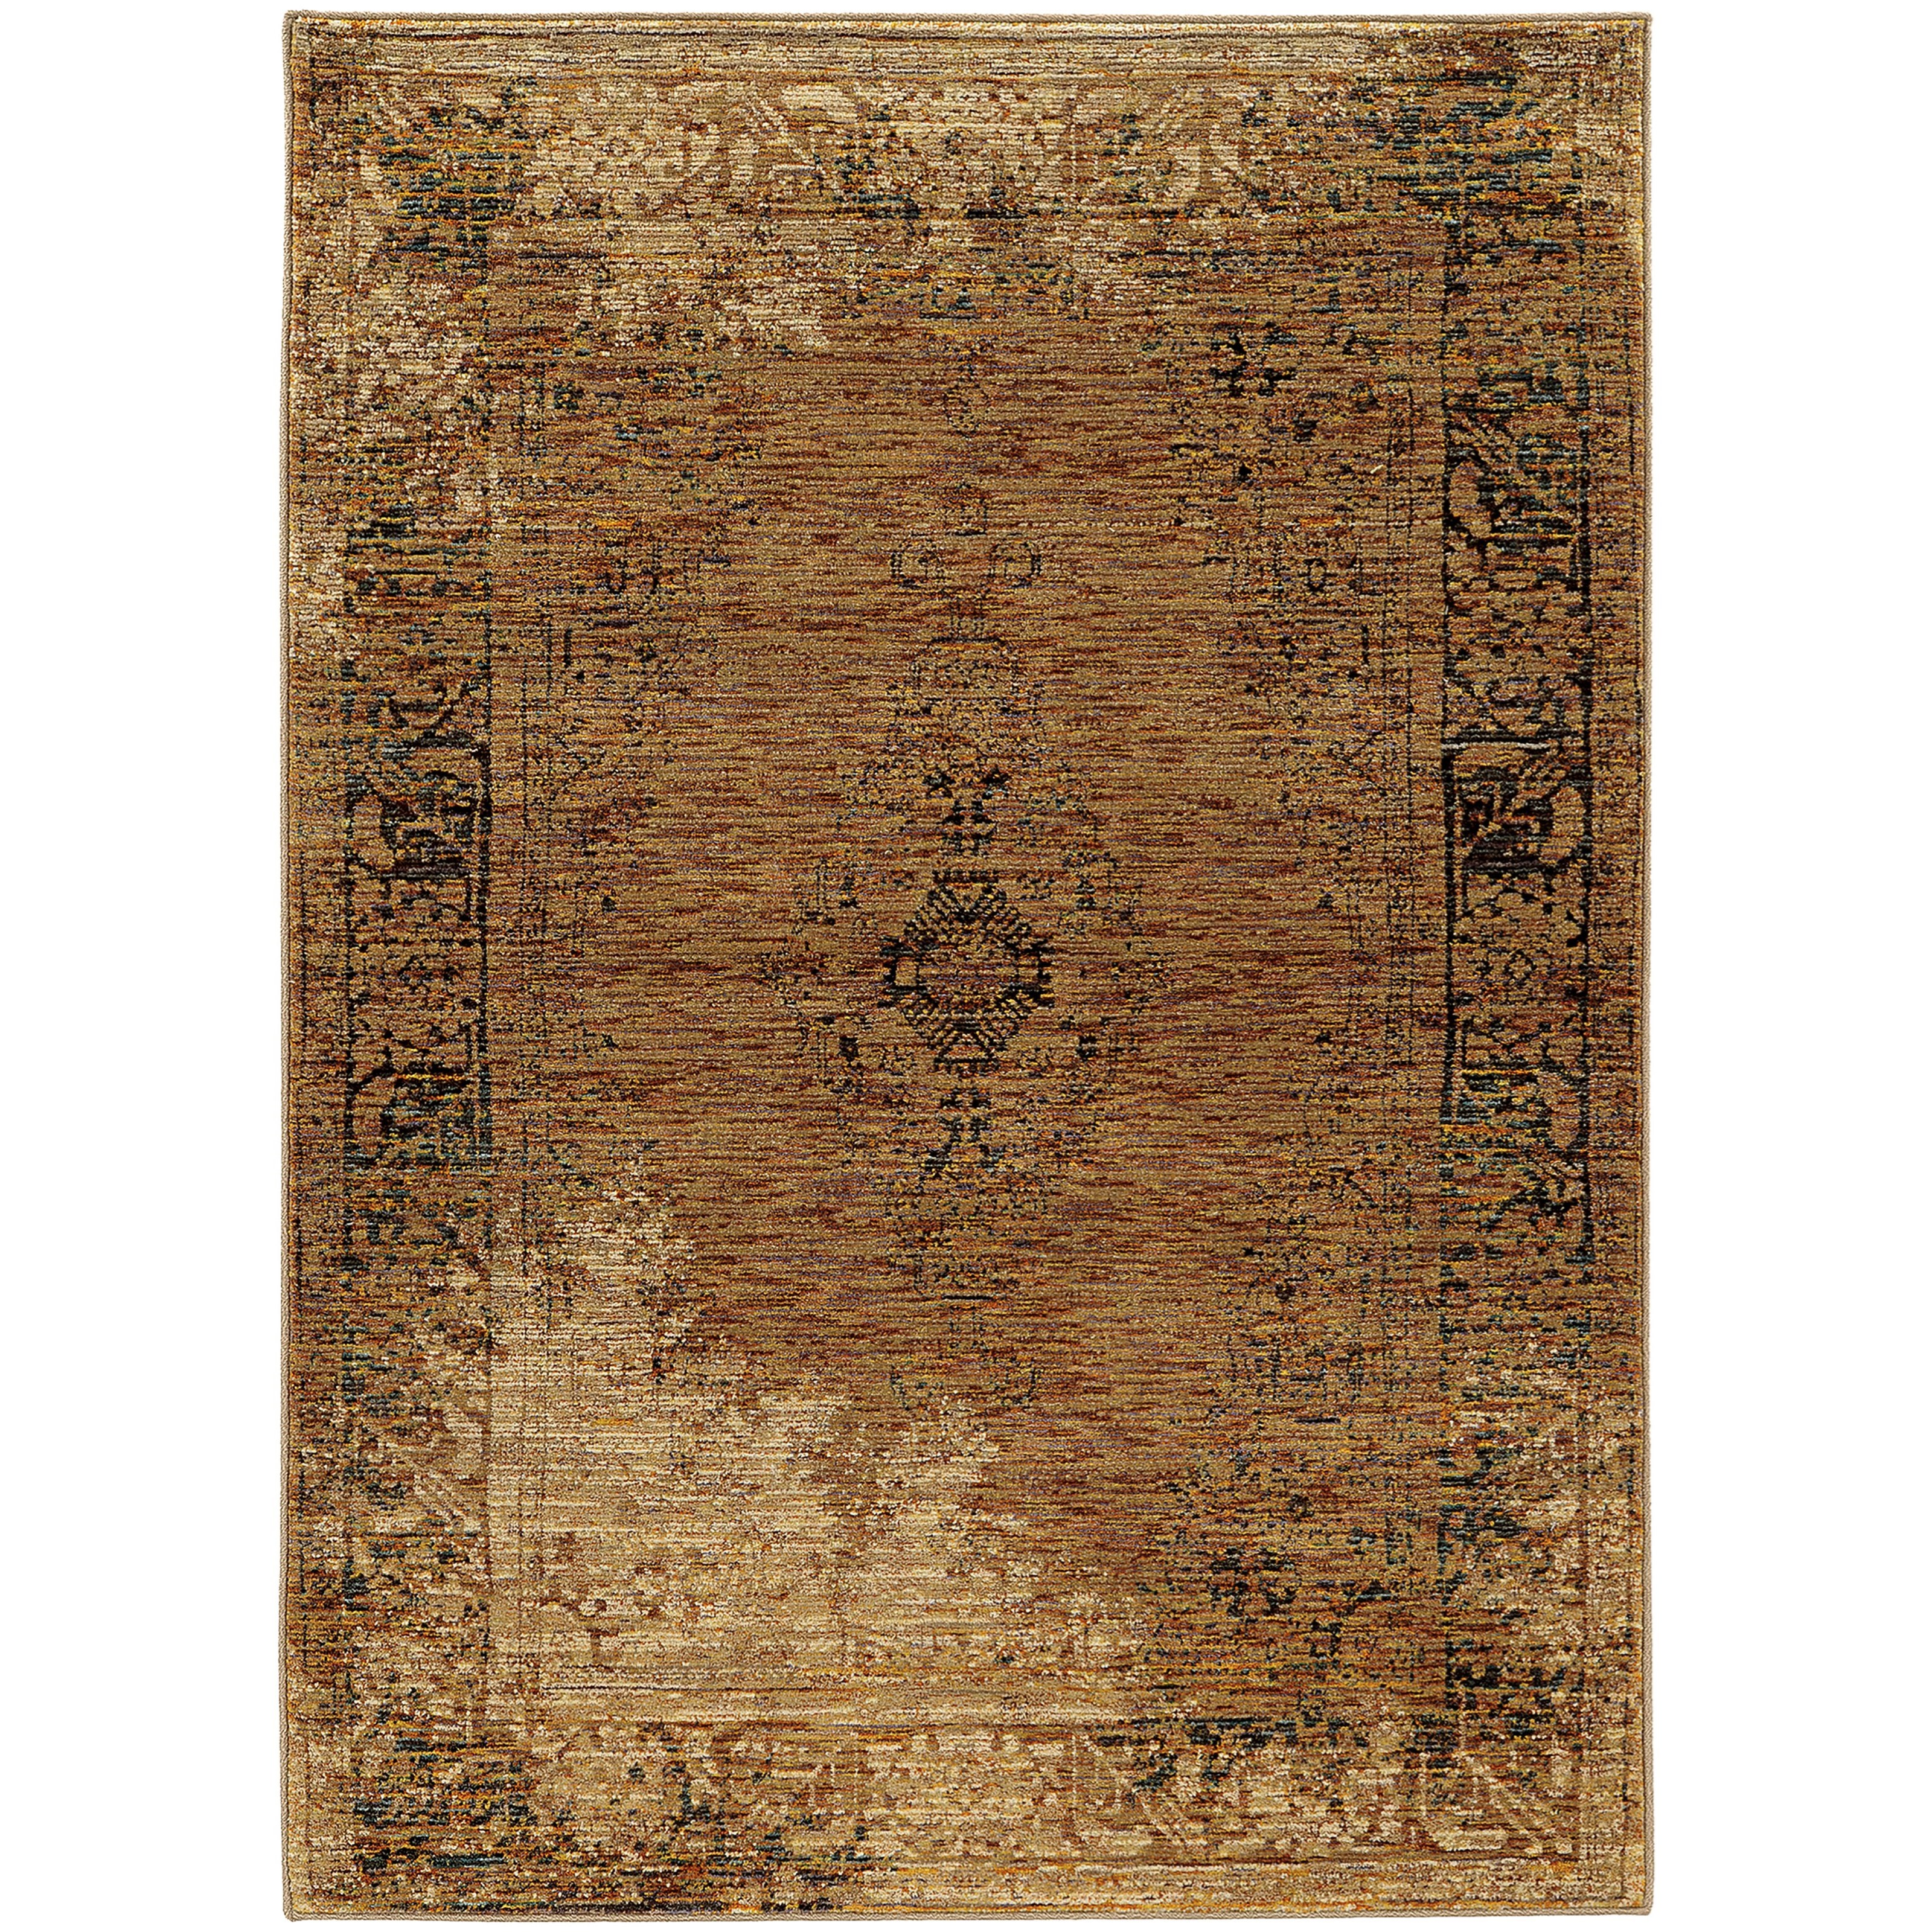 """Andorra 7'10"""" X 10'10"""" Casual Gold/ Brown Rectangle  by Oriental Weavers at Steger's Furniture"""